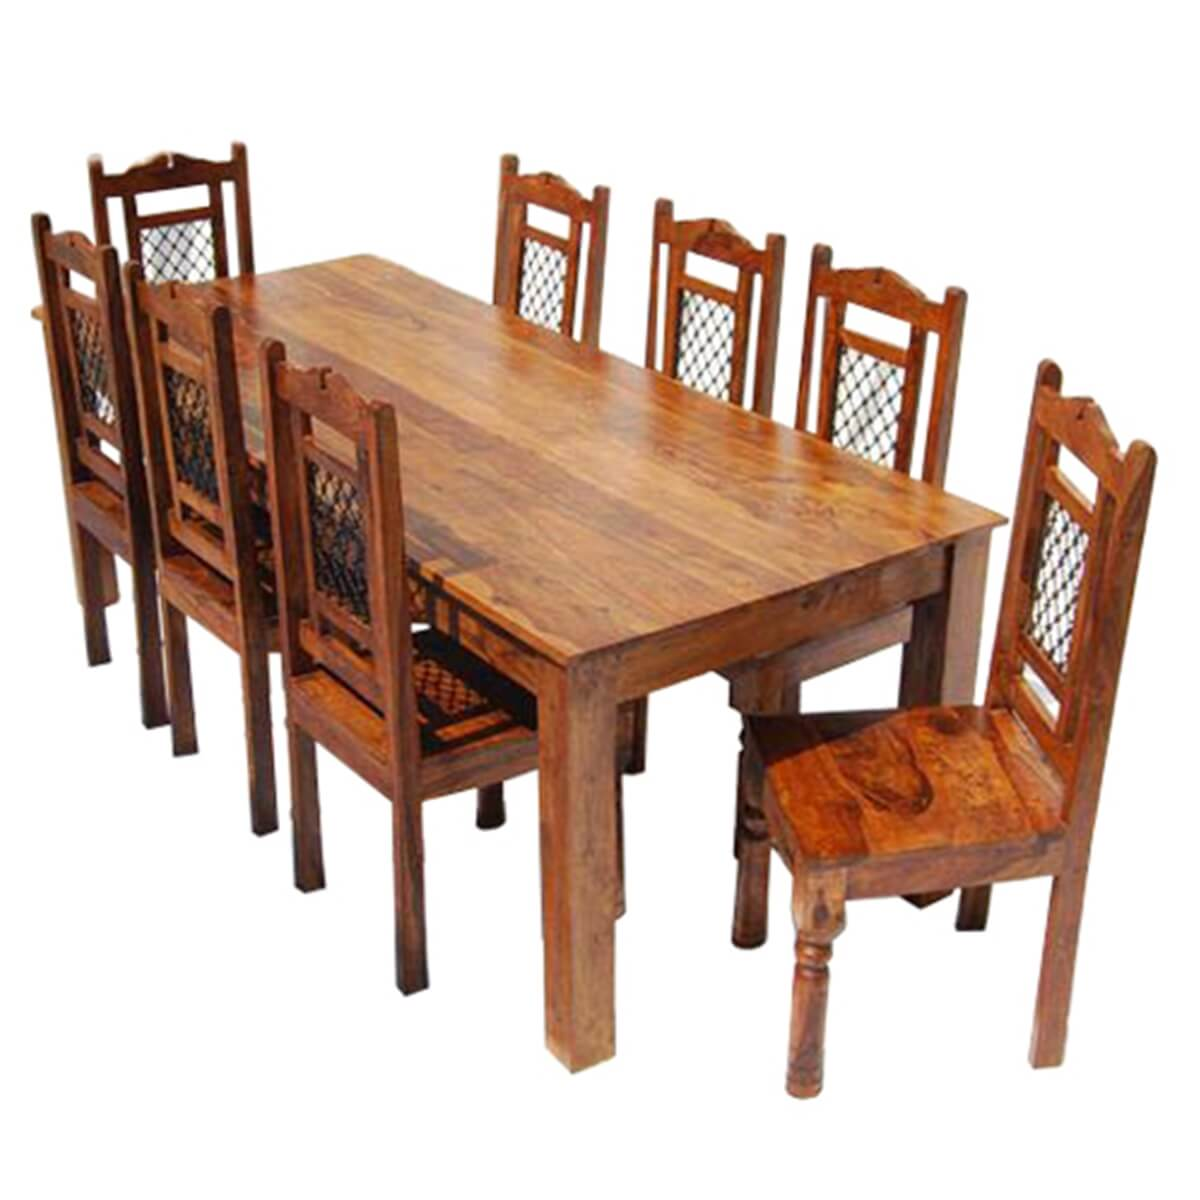 philadelphia solid wood rustic transitional 9pc dining table chair set. Black Bedroom Furniture Sets. Home Design Ideas